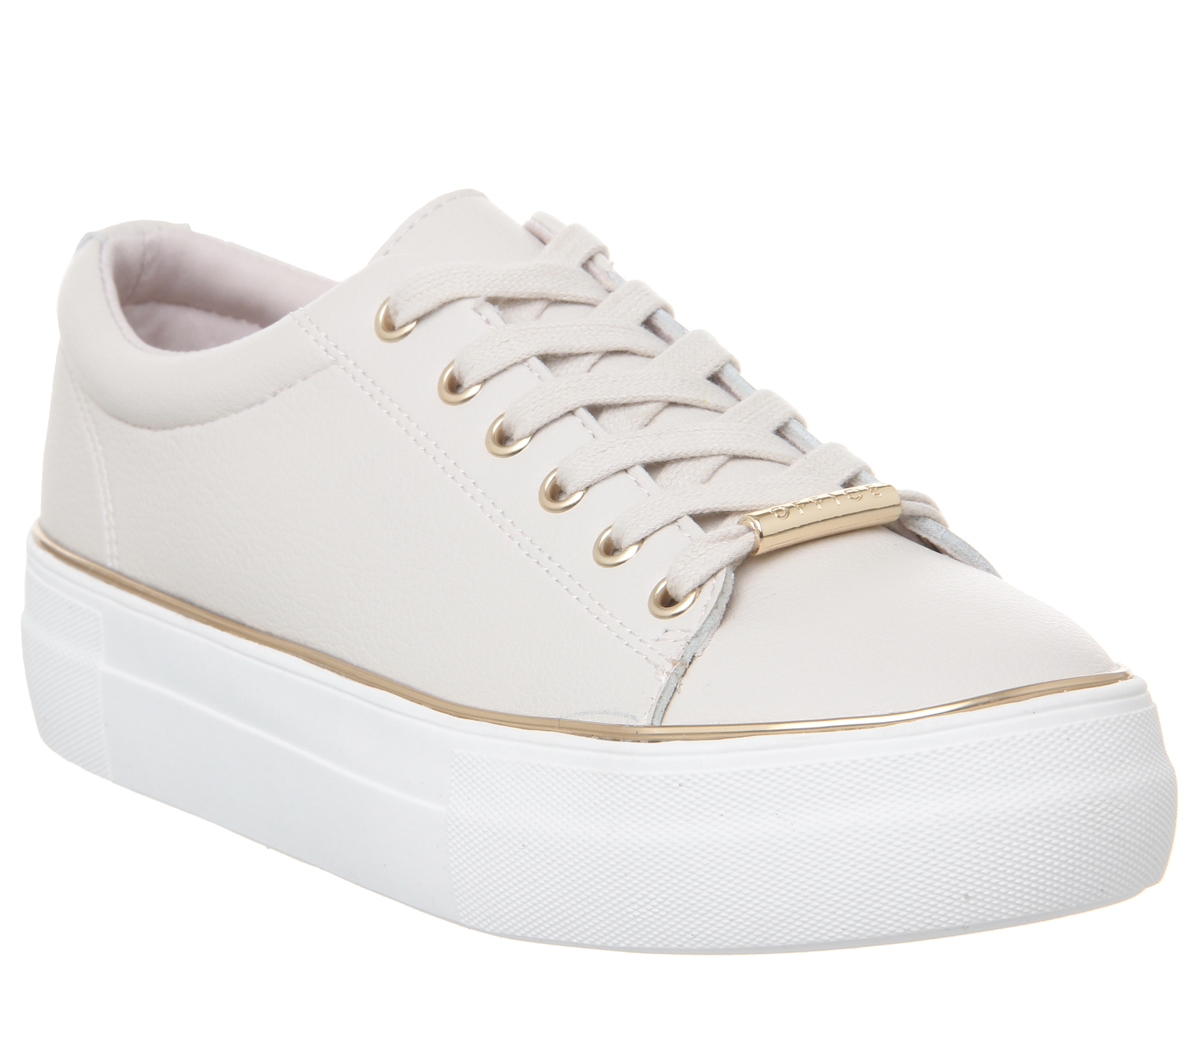 Womens Office Free Flatform Trainers Nude With gold Rand Flats Flats Flats e9df0a